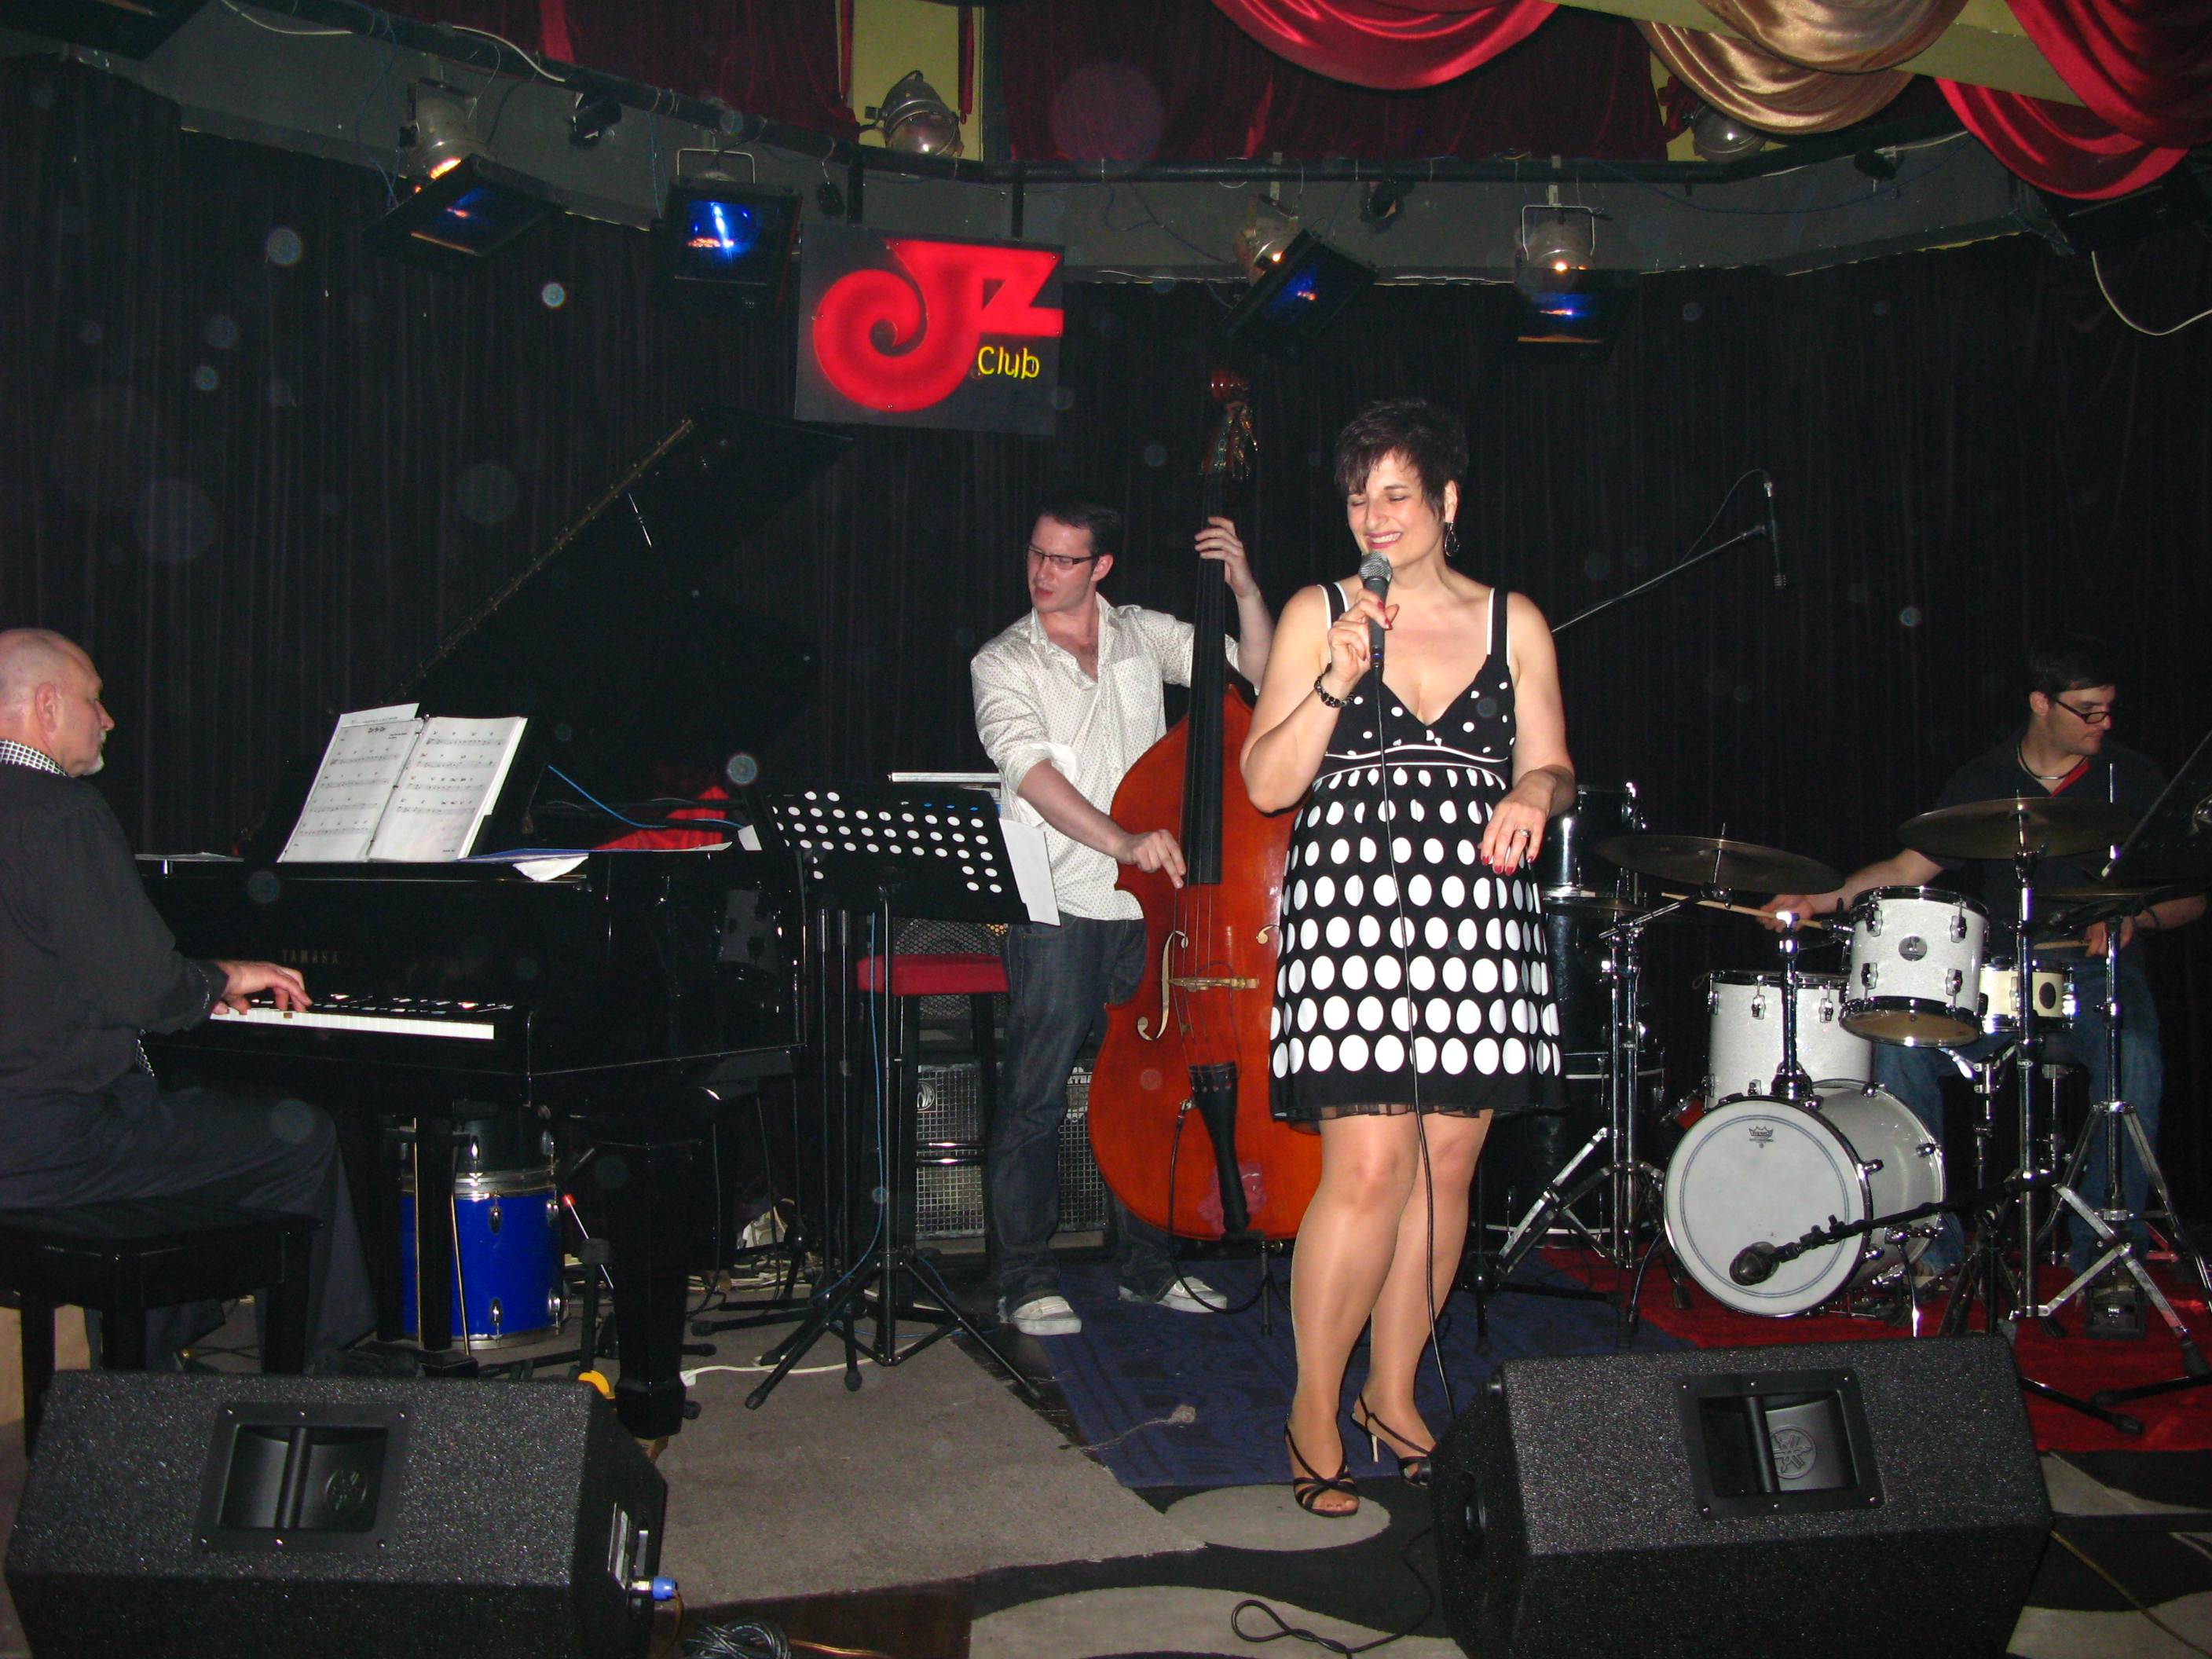 JZ Jazz Club, China